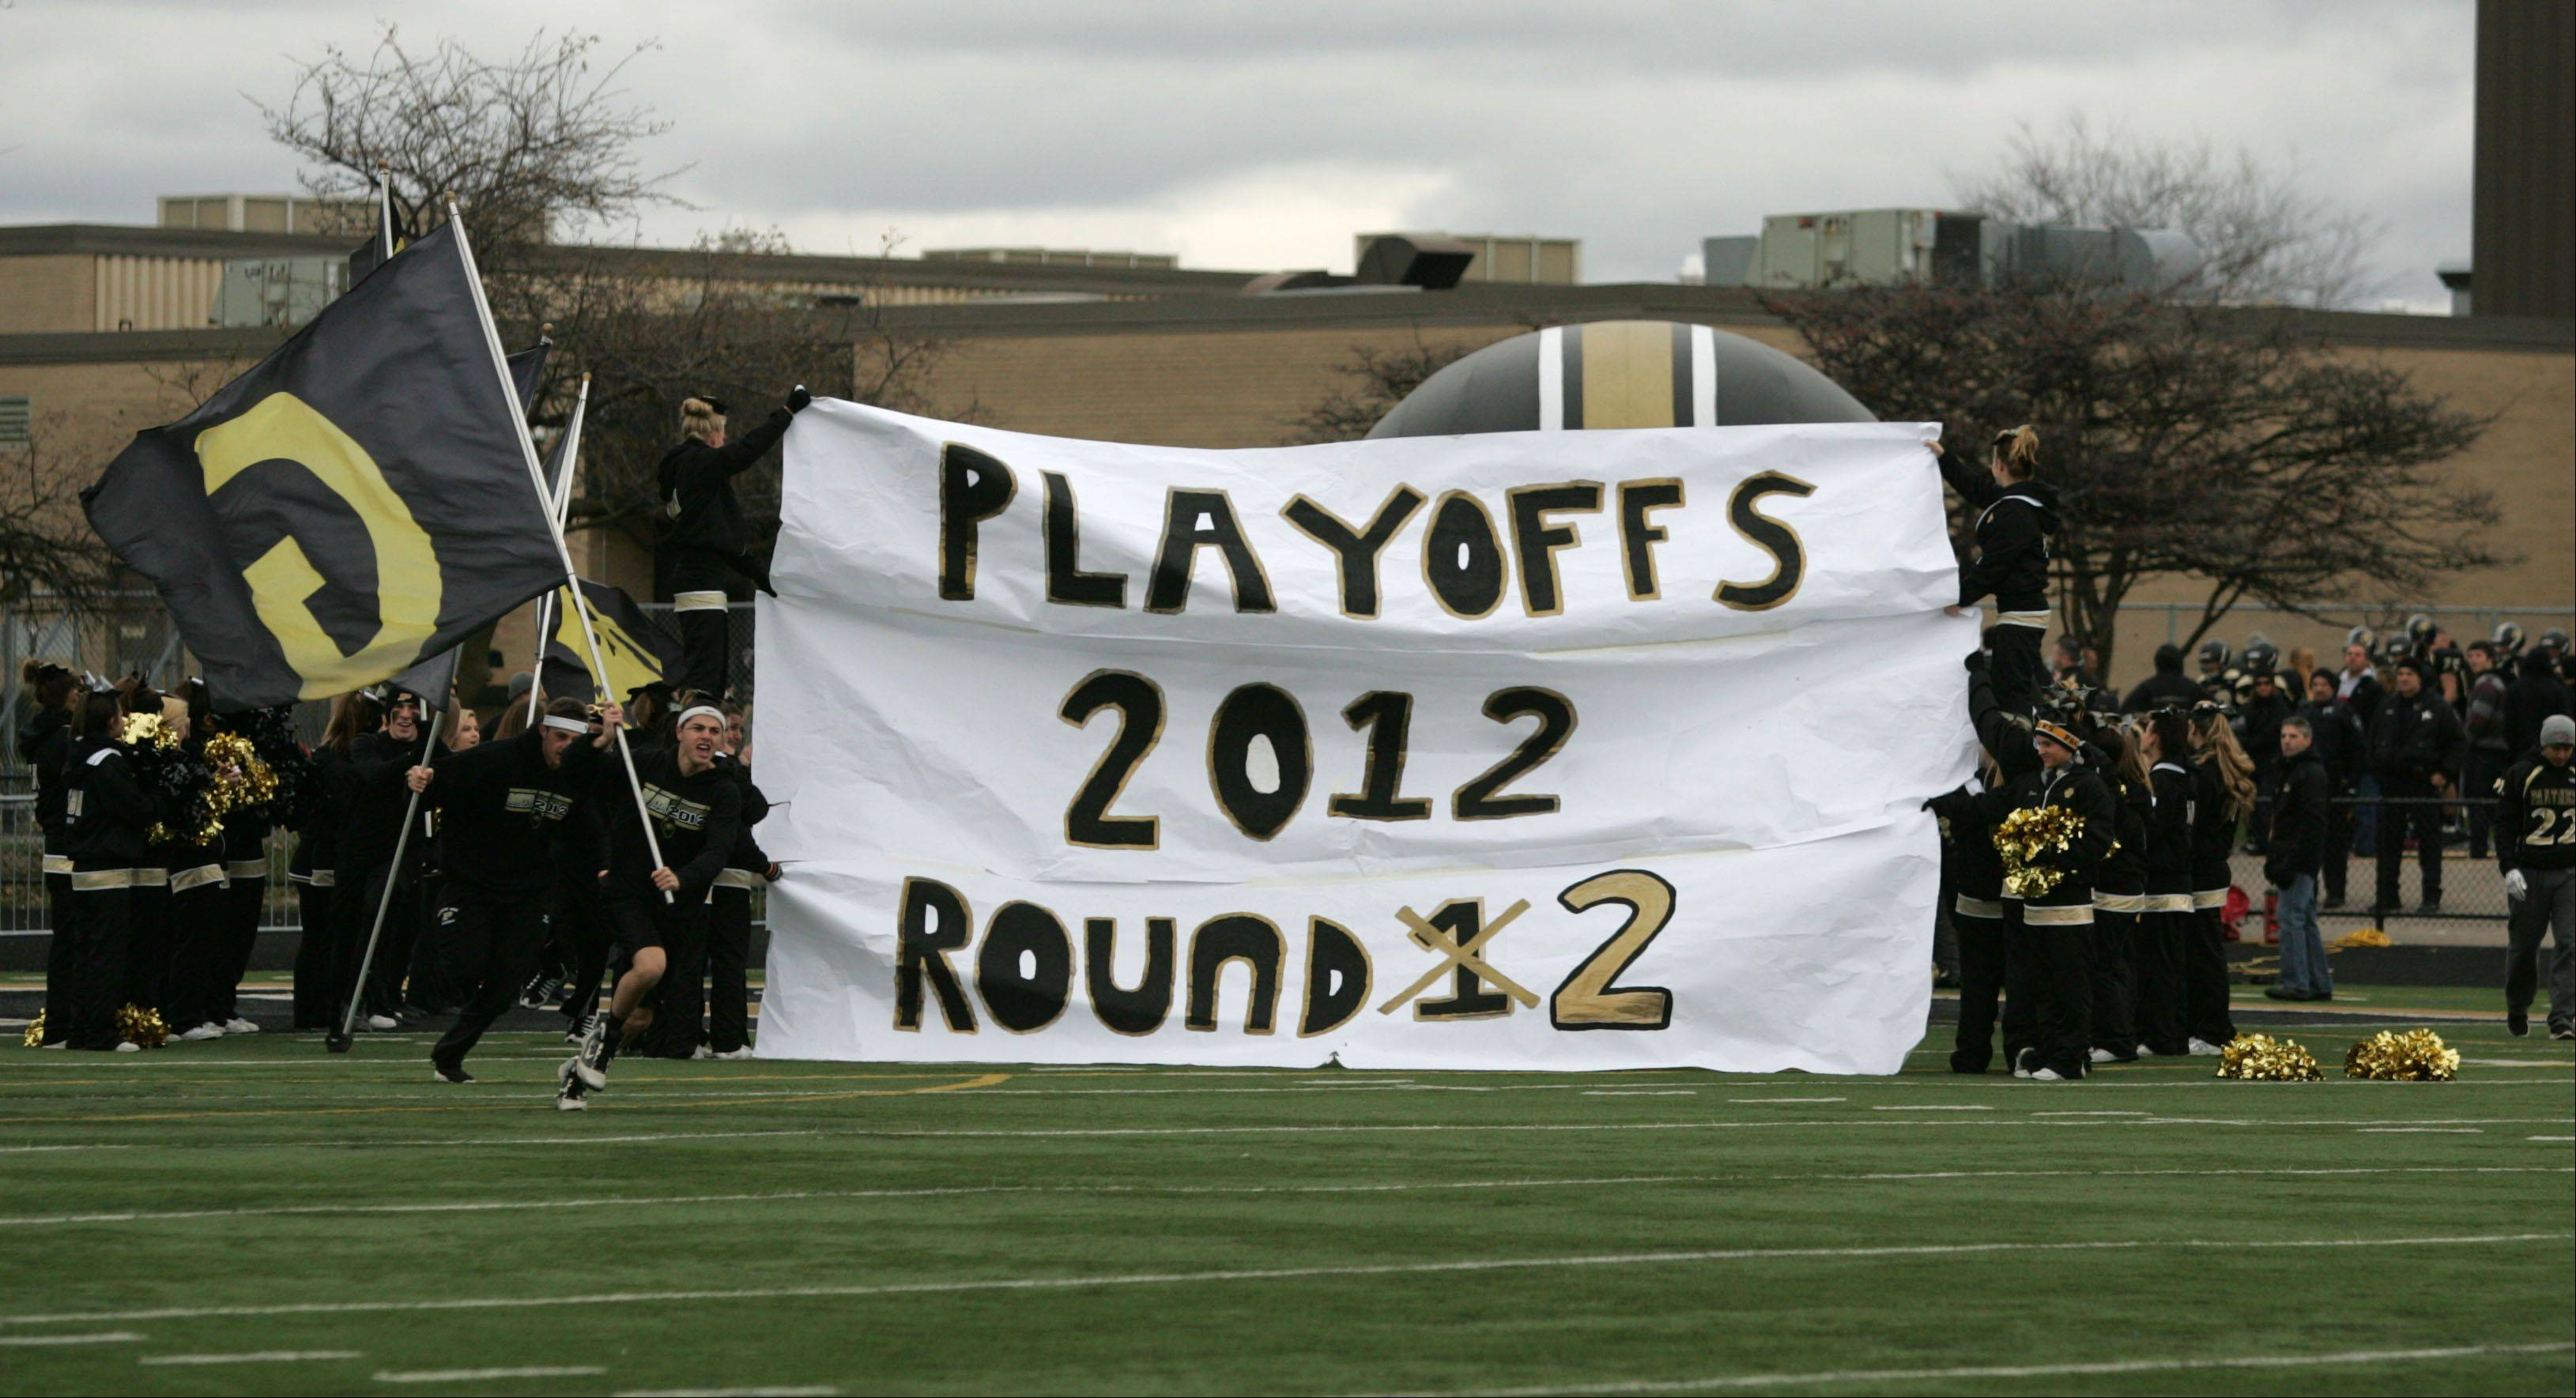 $PHOTOCREDIT_ON$Glenbard North's battles Stevenson's during second round Class 8A football playoffs.Daniel White/dwhite@dailyherald.com$PHOTOCREDIT_OFF$ Glenbard North hosted Stevenson Saturday afternoon for IHSA round 2 playoff football in Carol Stream.